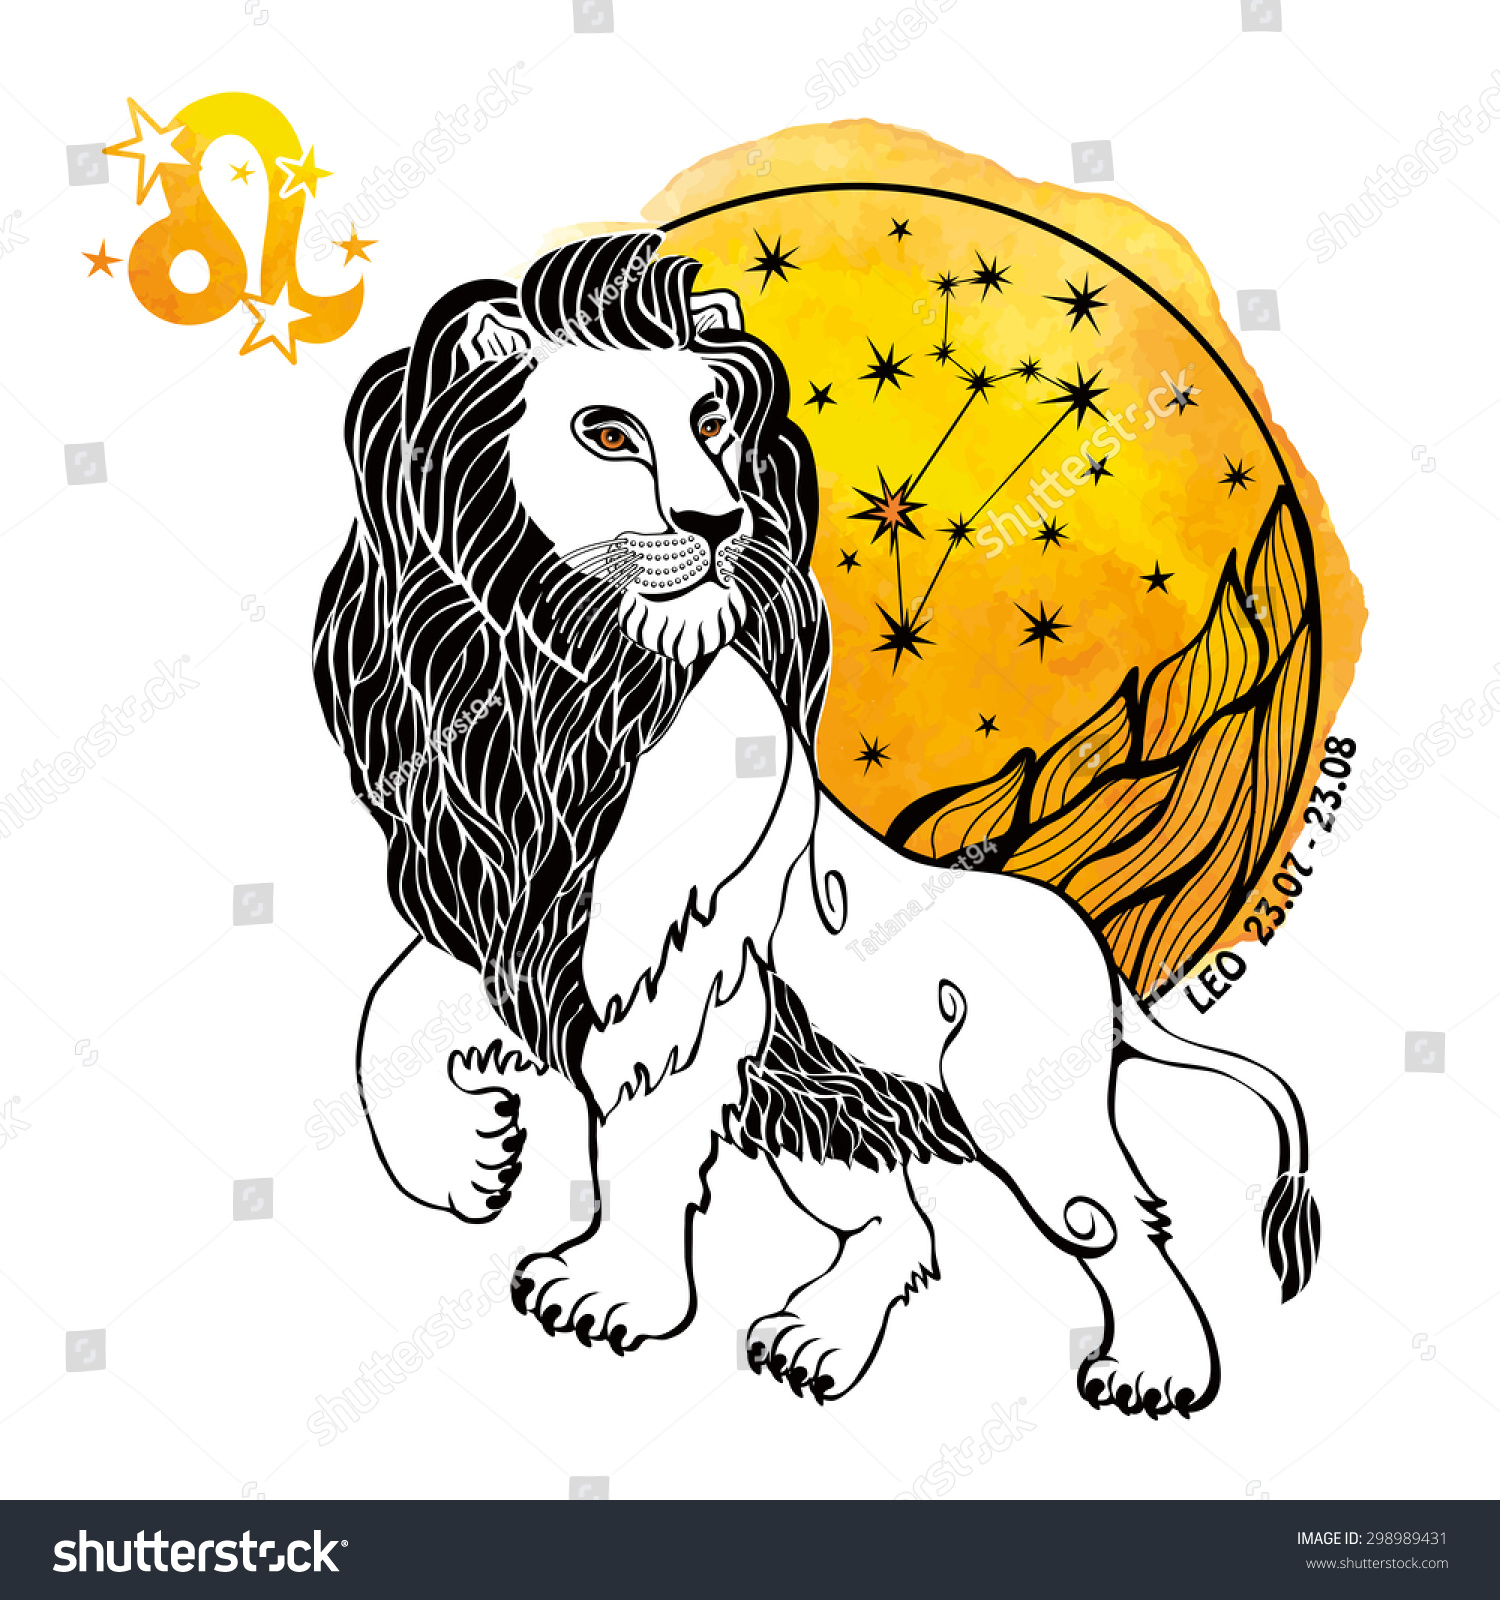 Leo Zodiac Sign Lion Horoscope Constellationstars Stock ...